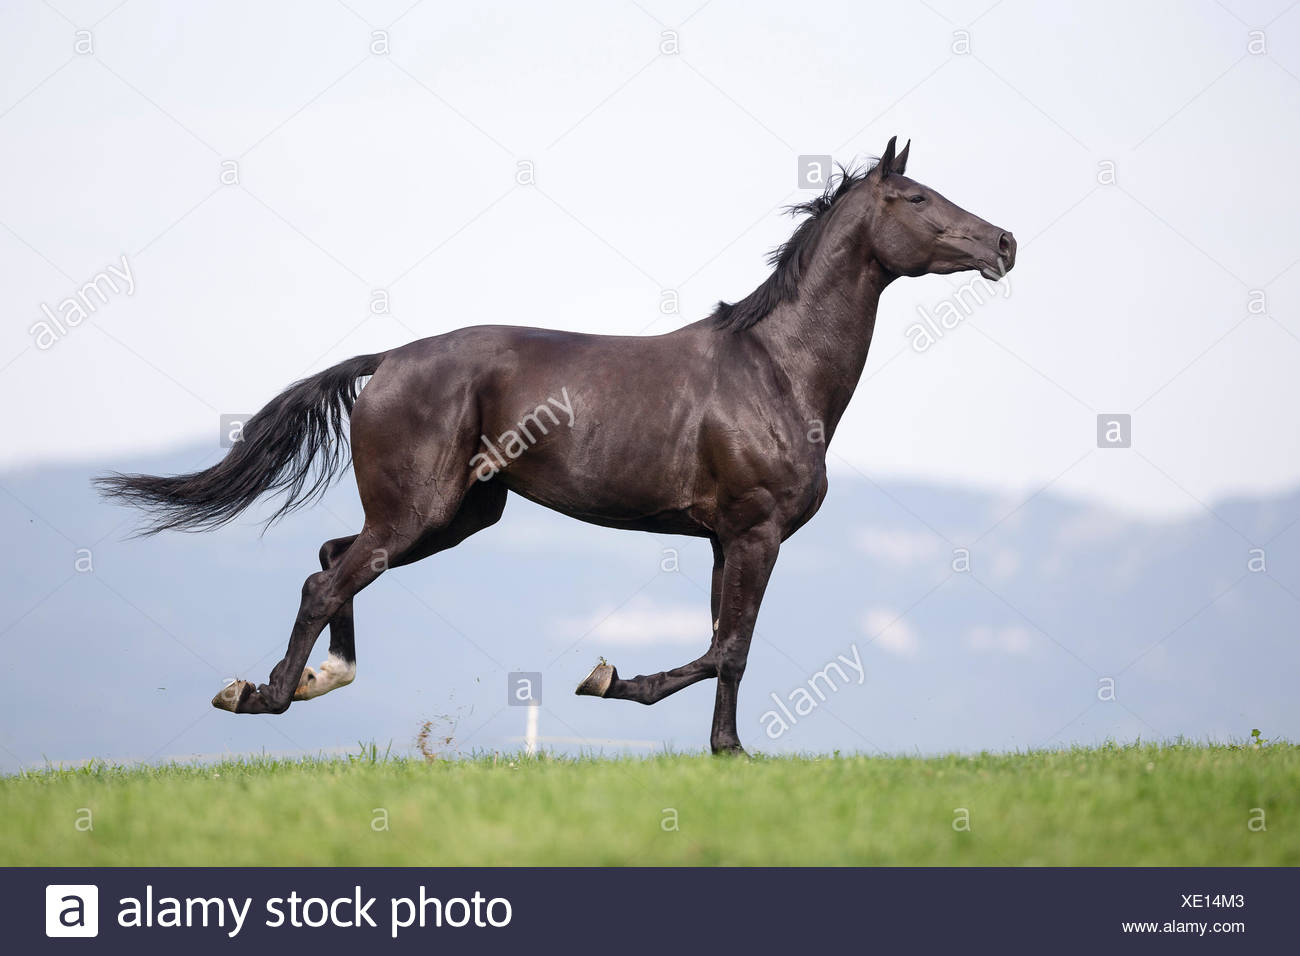 Oldenburg Horse. Black mare galloping on a pasture. Sequence. Switzerland - Stock Image